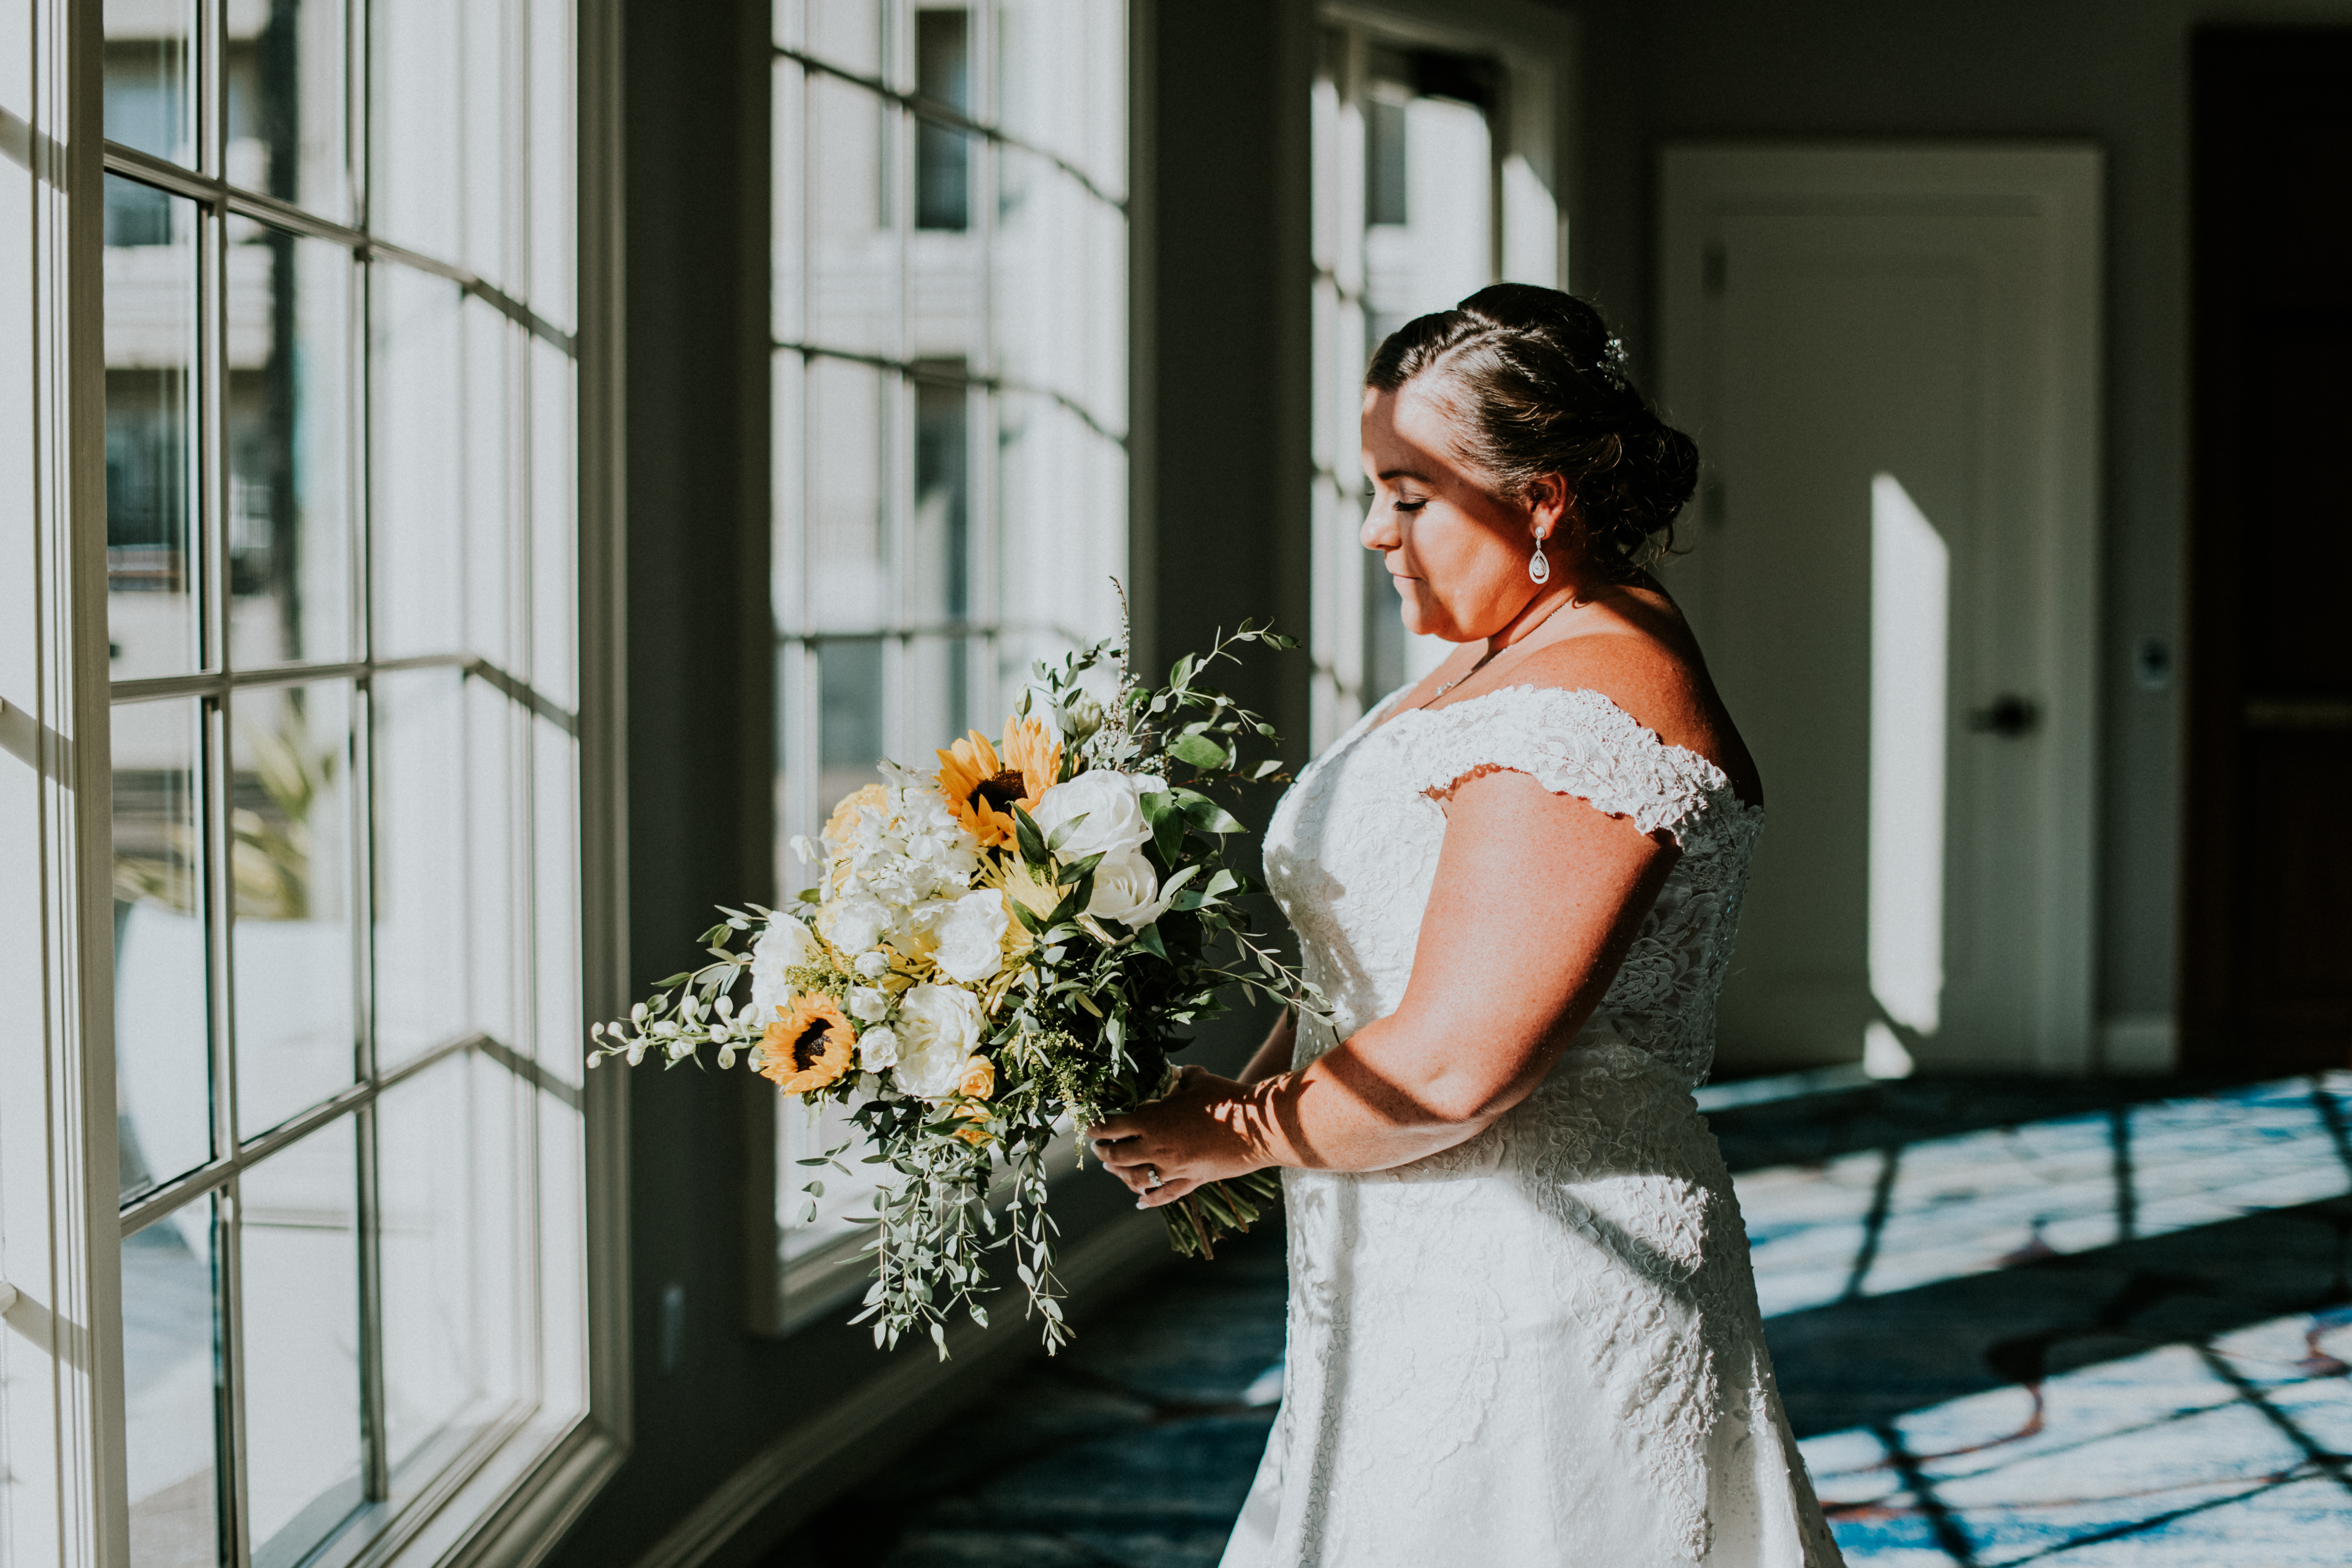 bride in wedding dress posed by window wedding day photography california wedding photographer